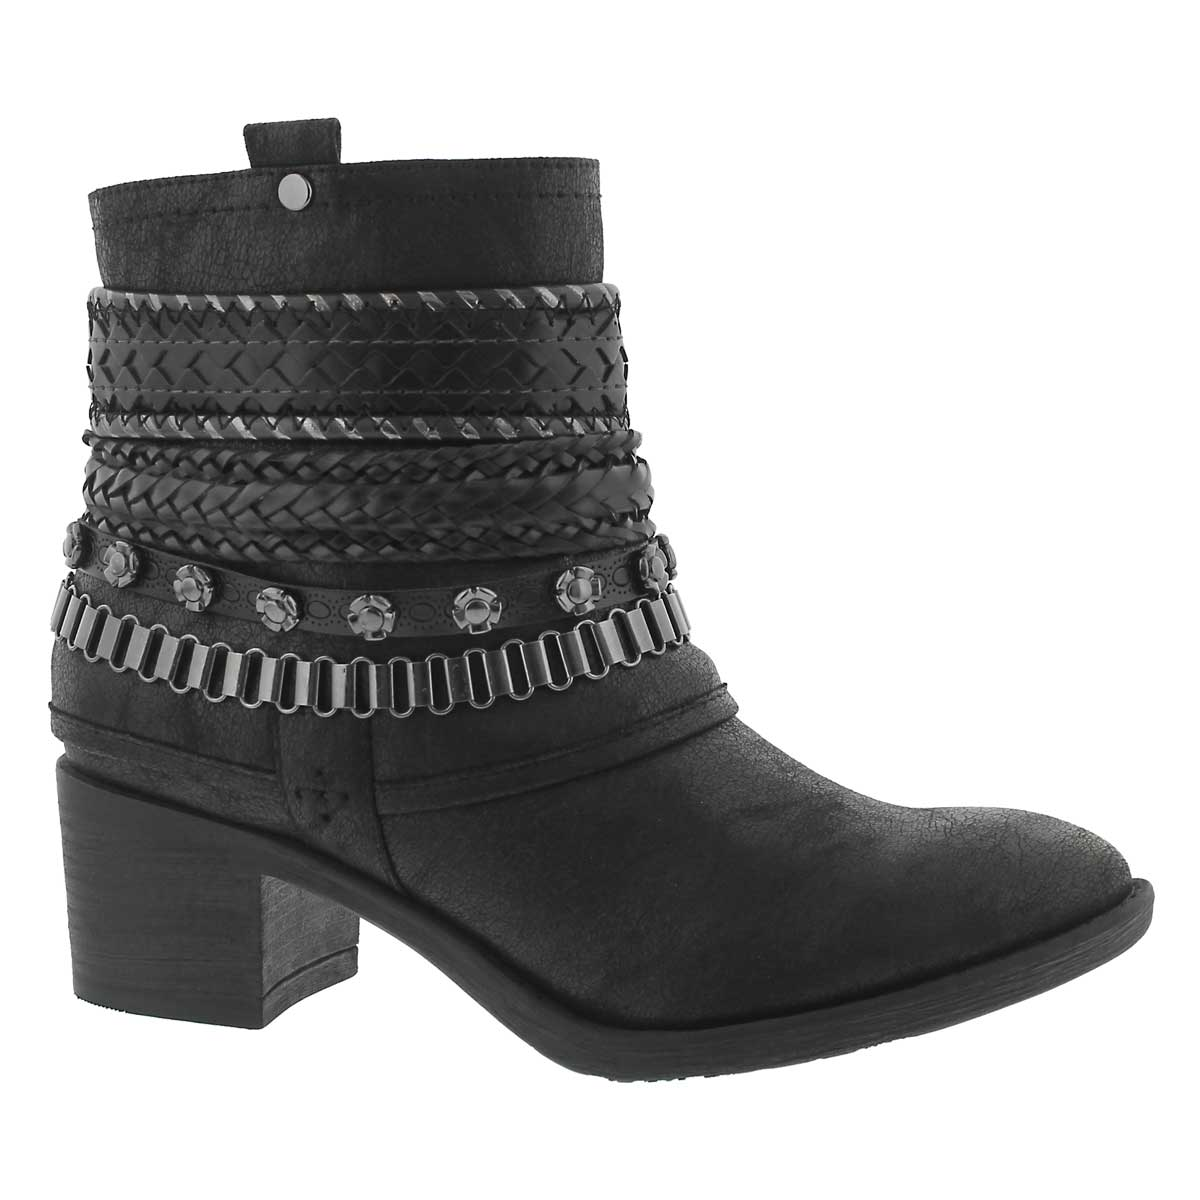 Lds Bizou III black casual ankle boot